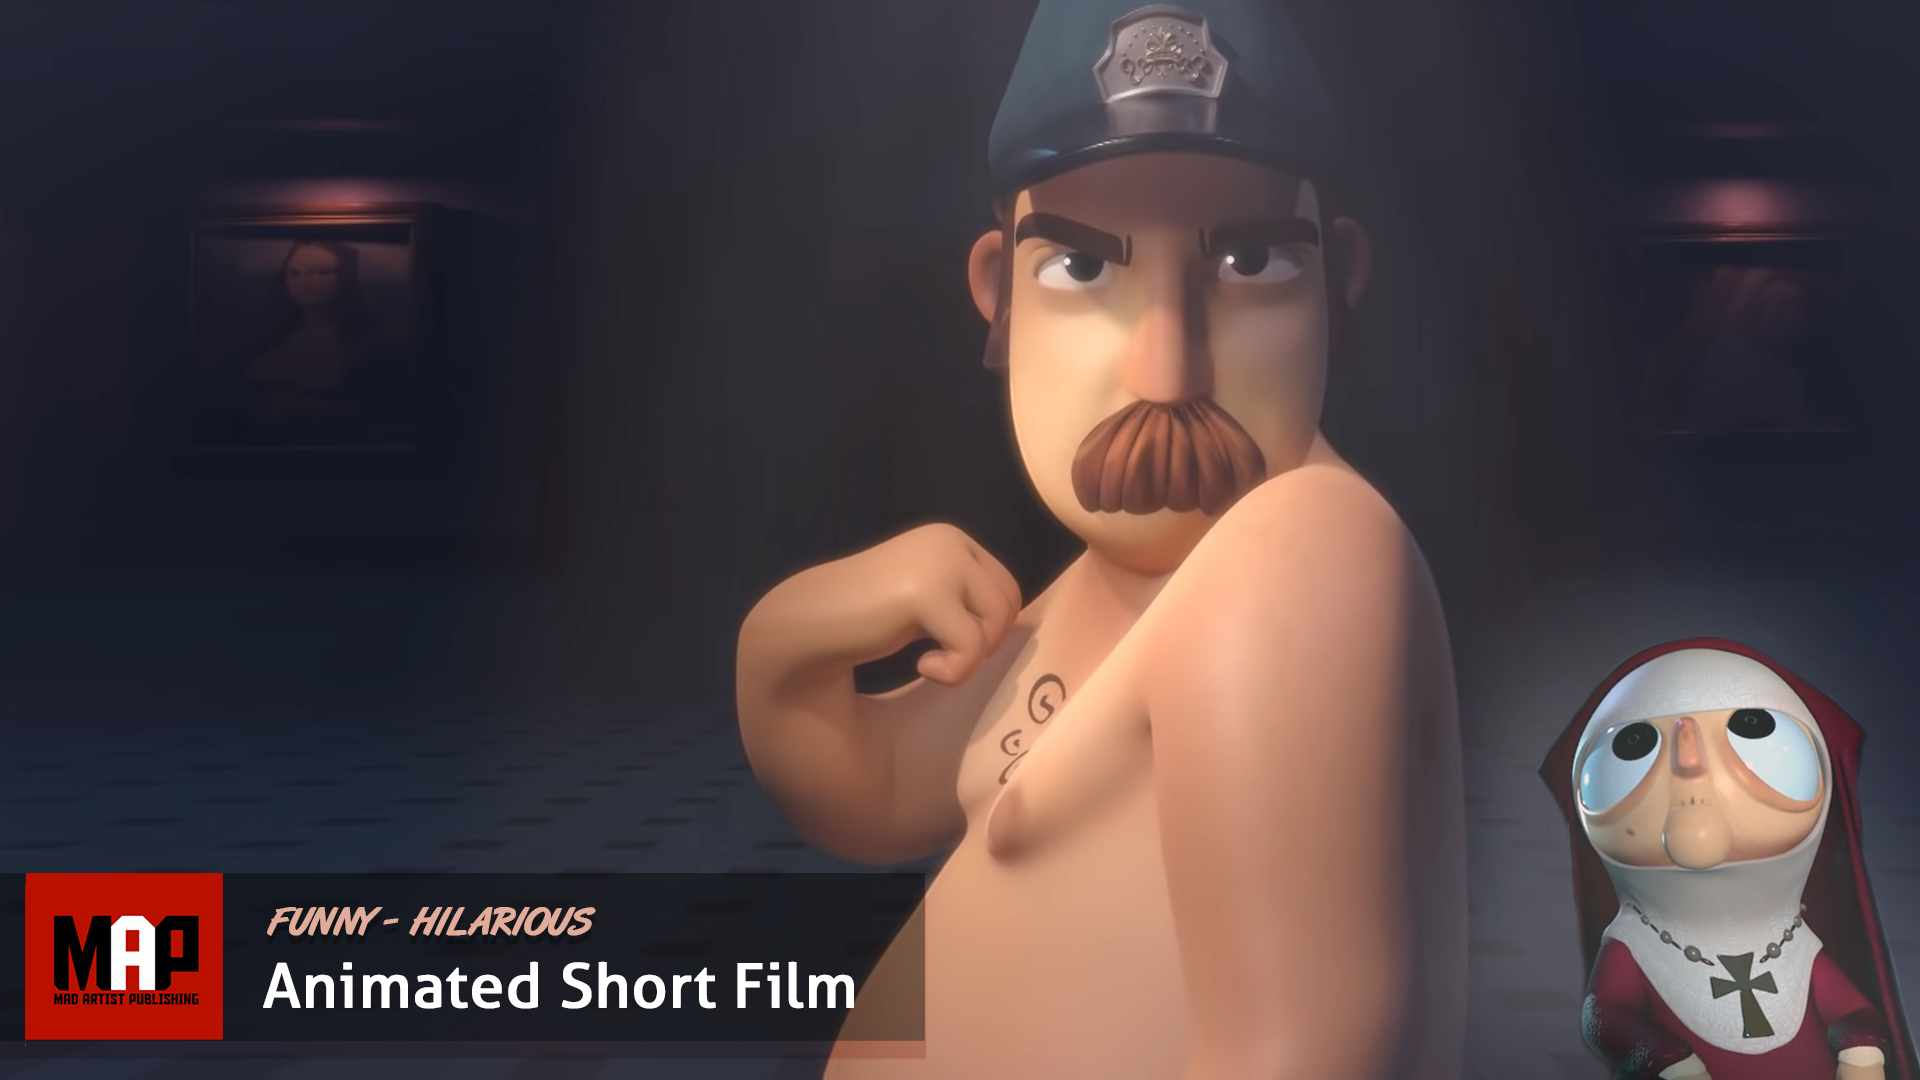 CGI 3d Animated Short Film ** NONE OF THAT ** Funny Hilarious Animation by Ringling College